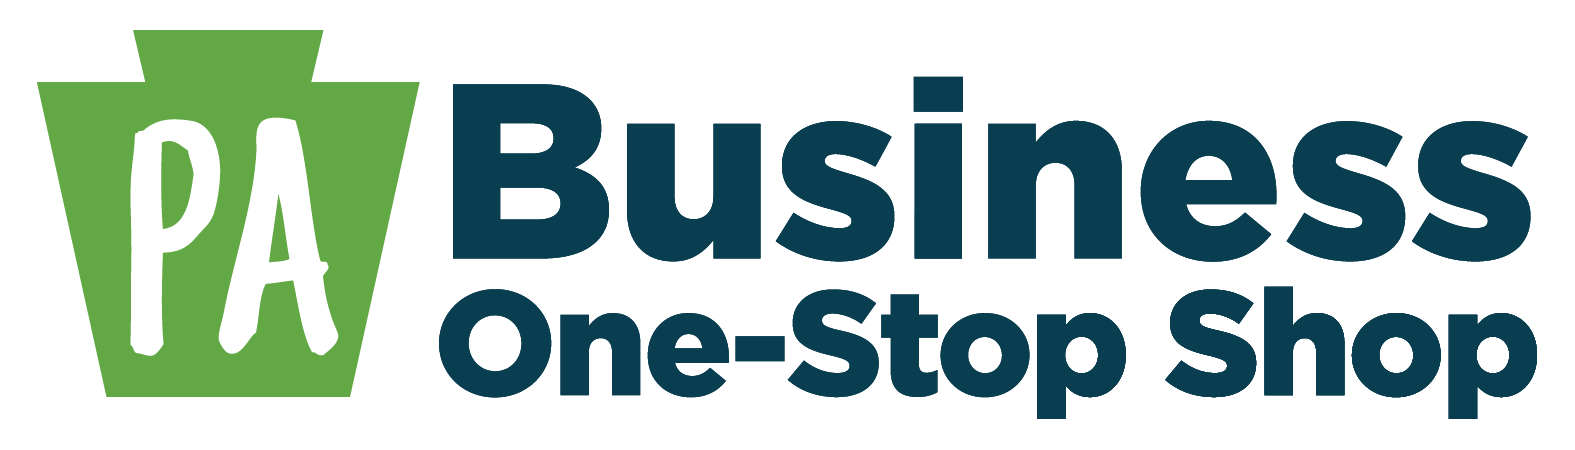 PA Business One-stop Shop